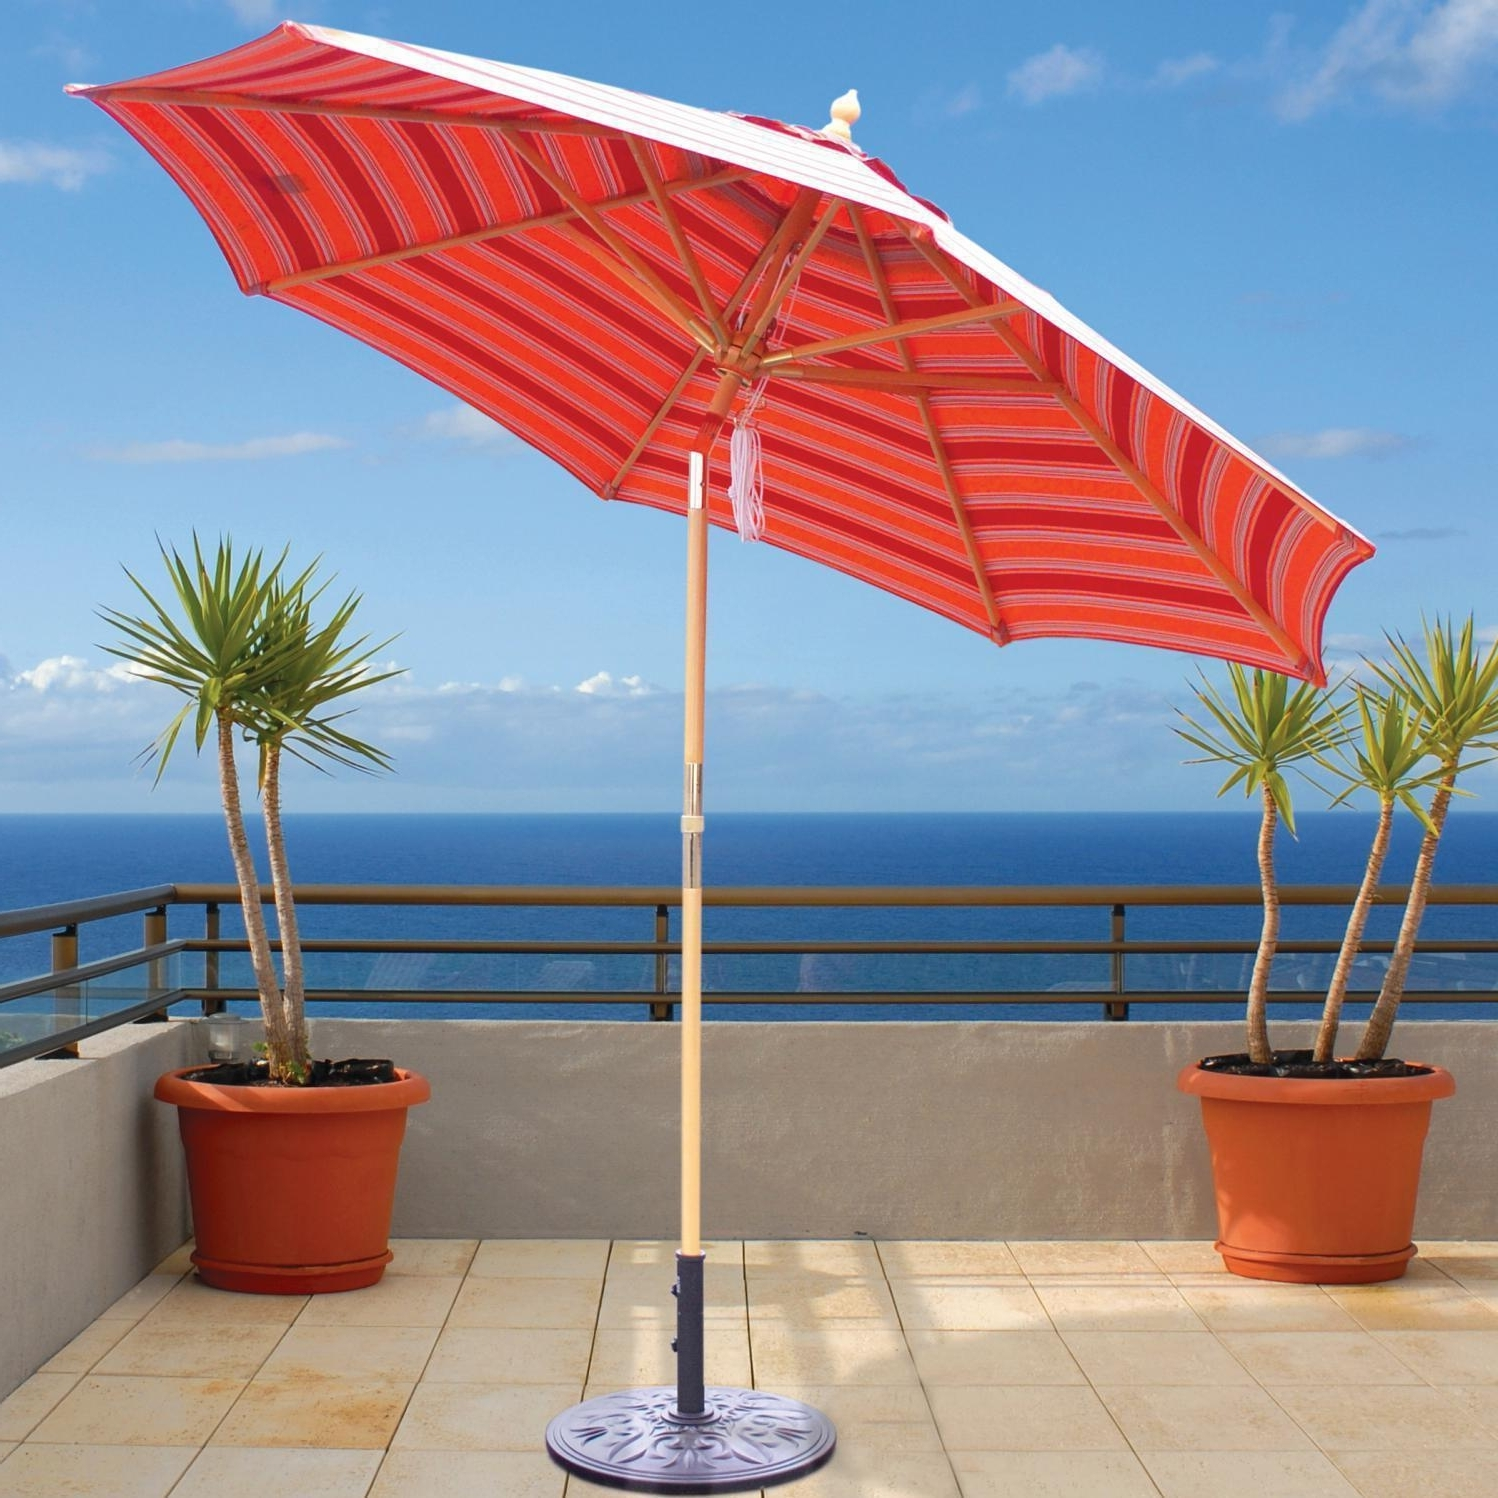 Wooden Patio Umbrellas In Well Known Galtech 9 Ft Wood Patio Umbrella With Crank Lift And Rotational Tilt (View 2 of 20)